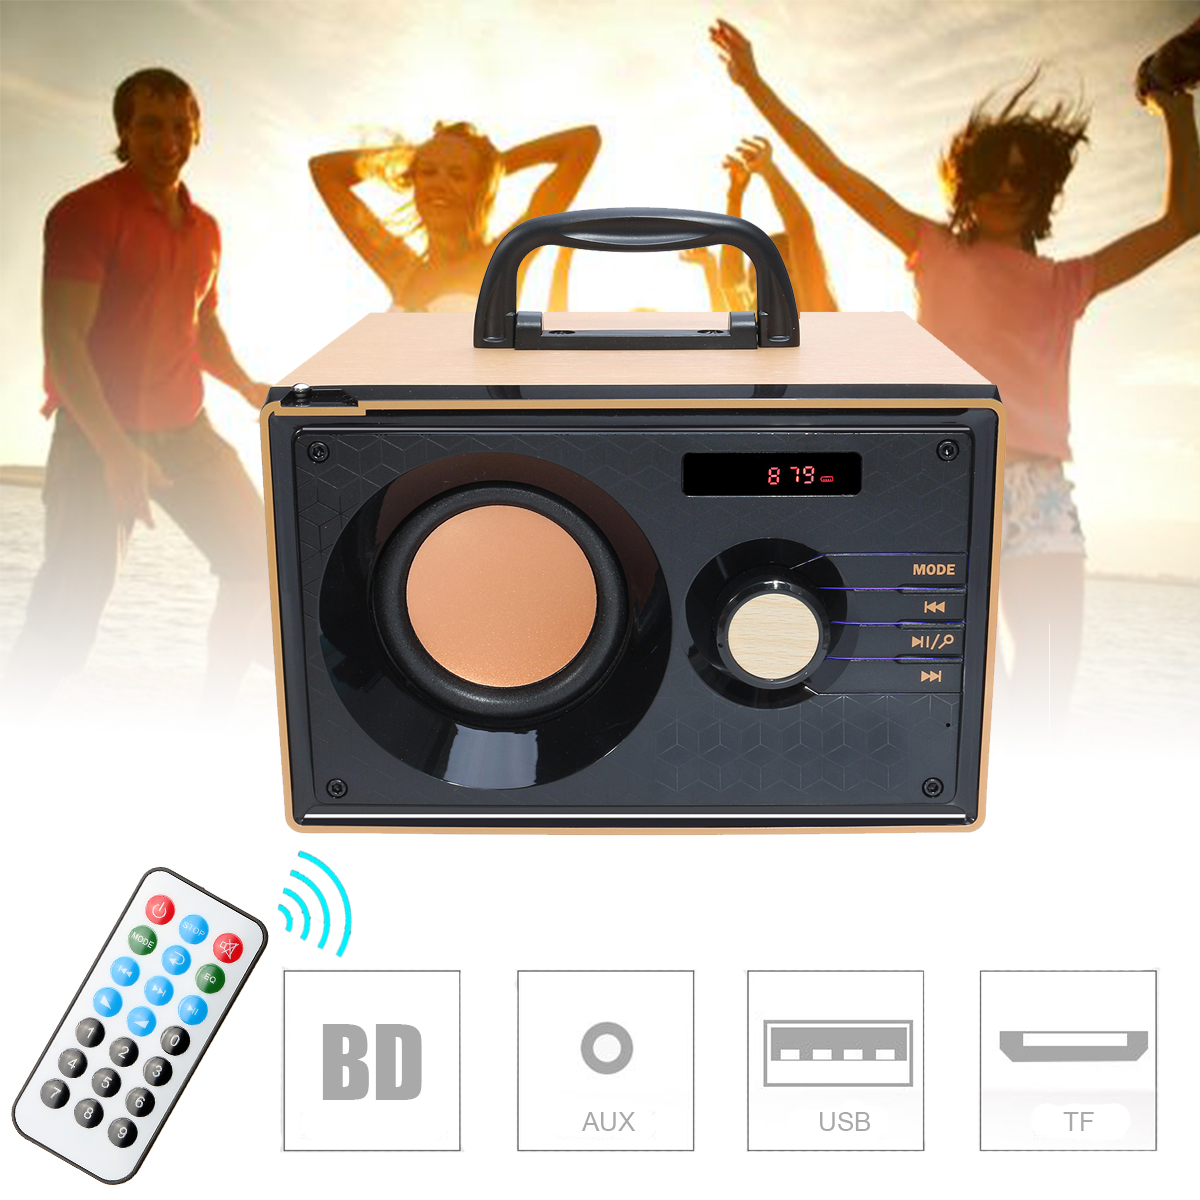 Stereo Bluetooth Speaker Subwoofer Heavy Bass Wireless Big Speakers Boombox Sound Box Support FM TF Indoor Outdoor Speaker 3 speakers bluetooth speaker wireless stereo subwoofer heavy bass speaker music player support tf card fm radio boombox